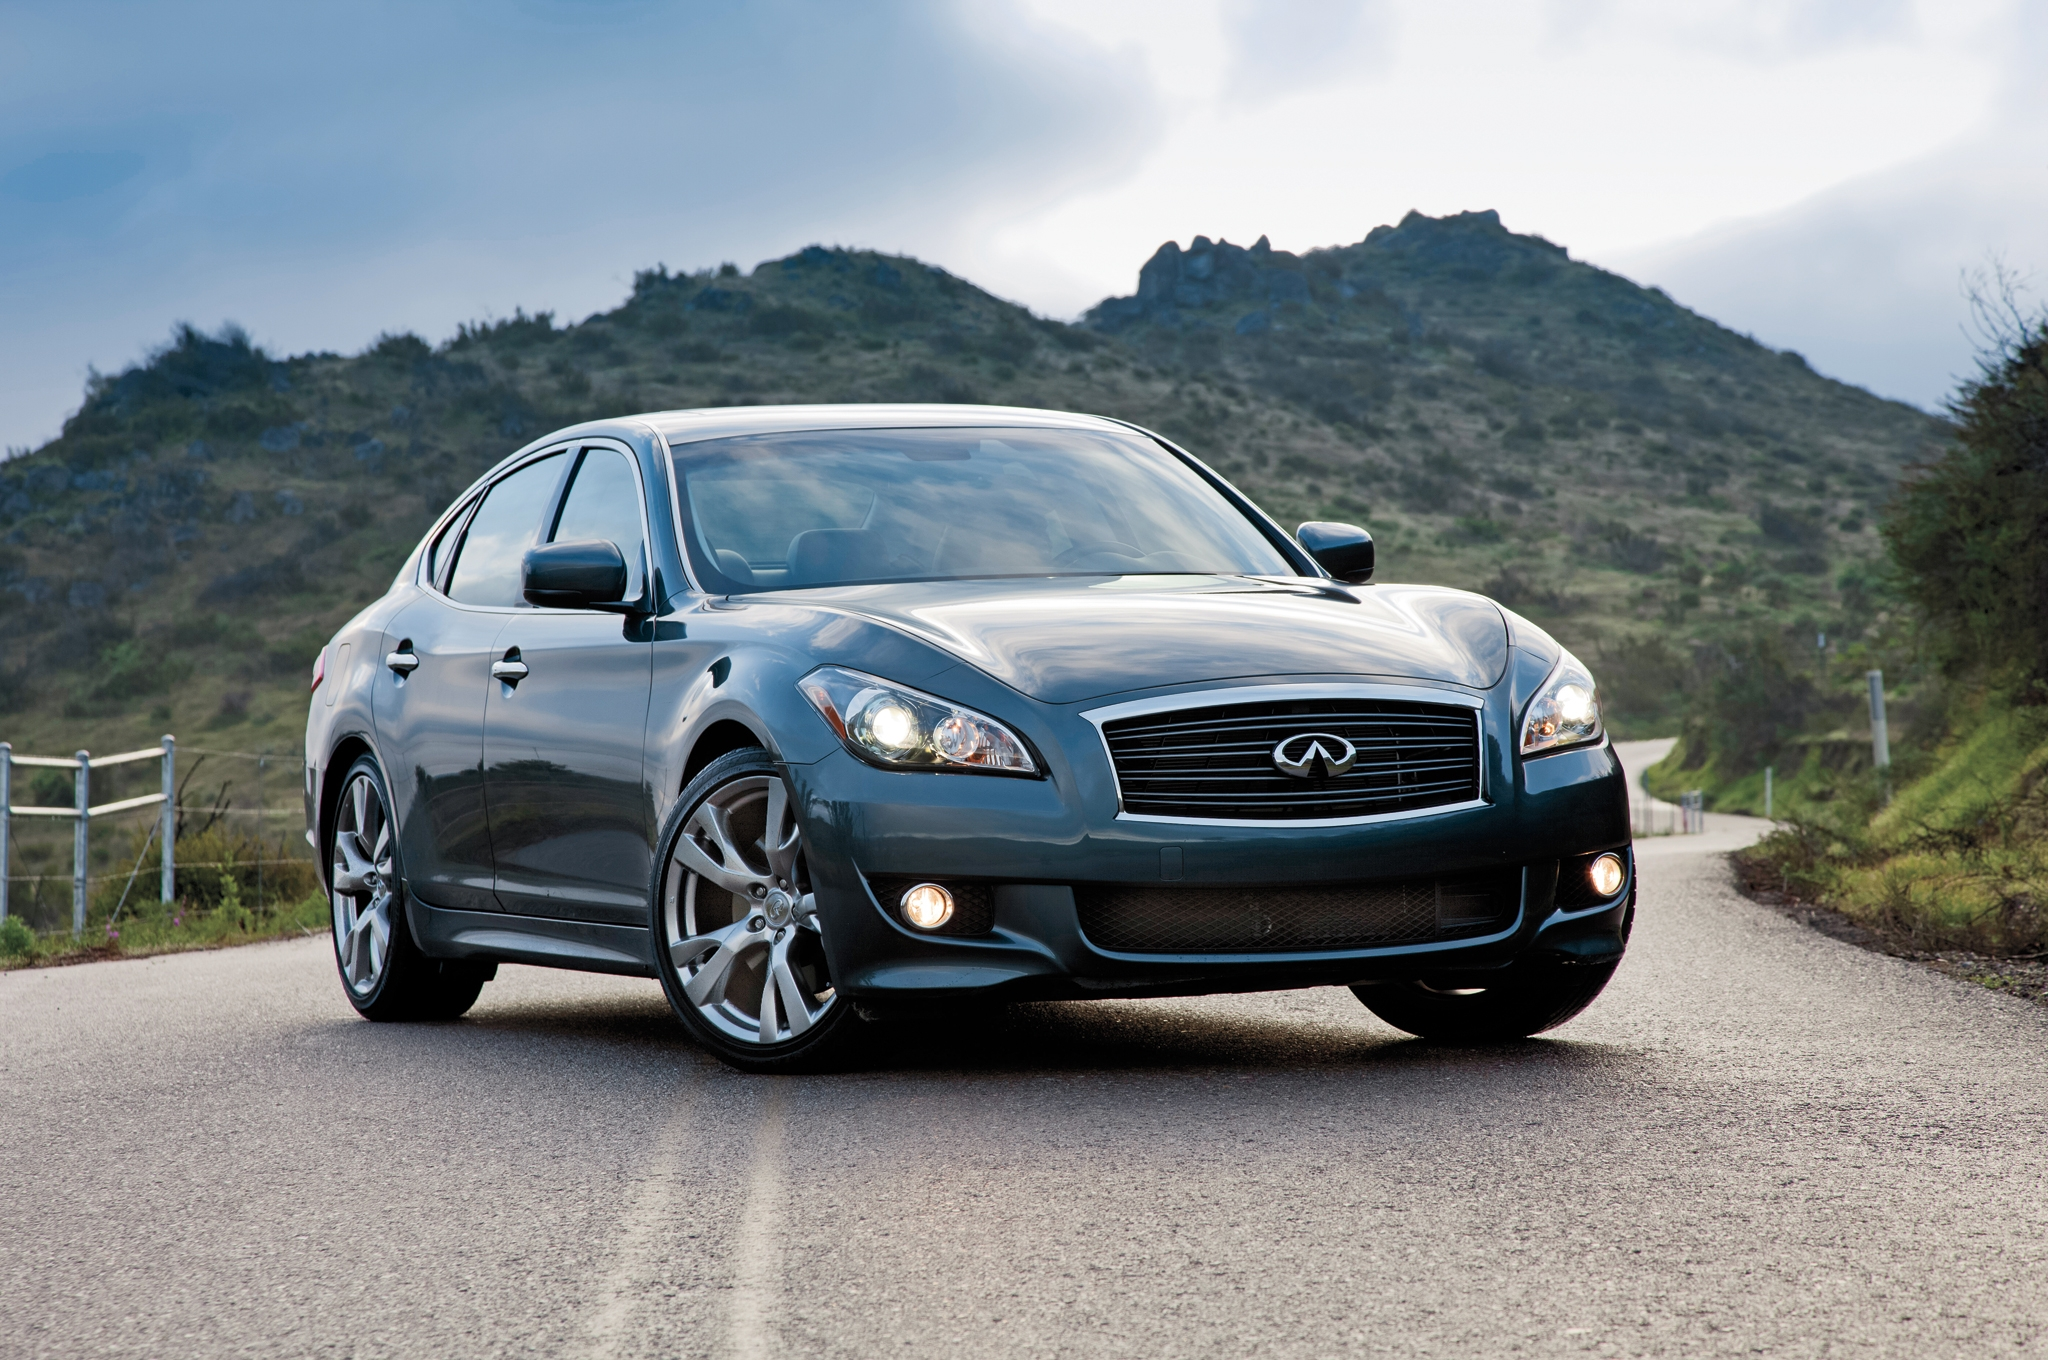 l side i infiniti cars wallpaper infinity hd of images